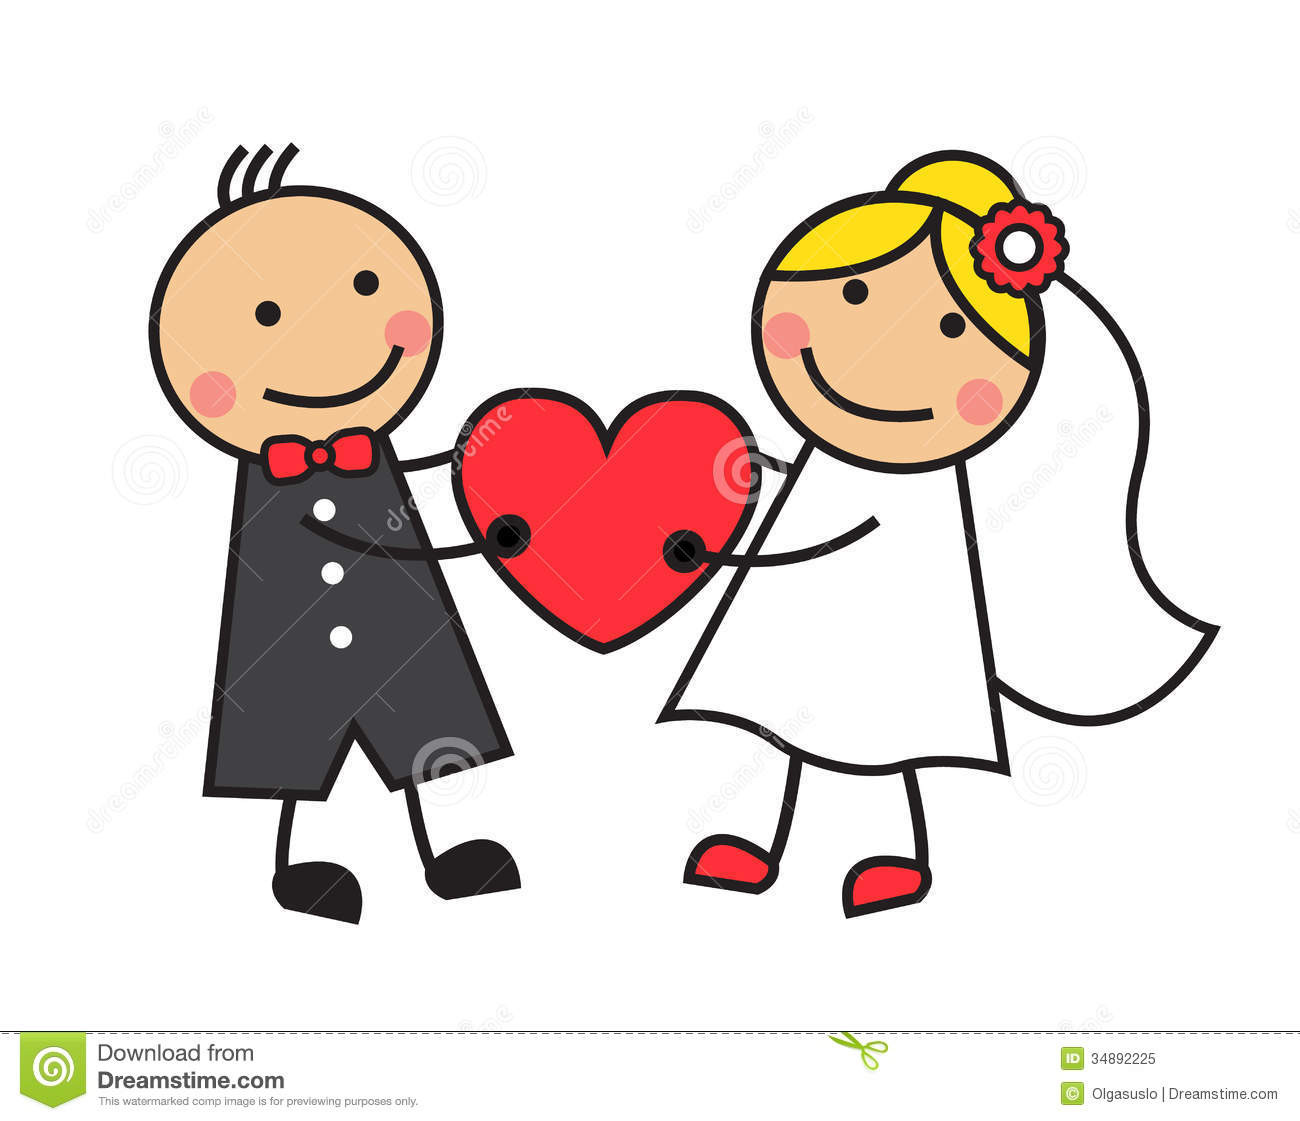 Marriage Clipart at GetDrawings.com | Free for personal use Marriage ...